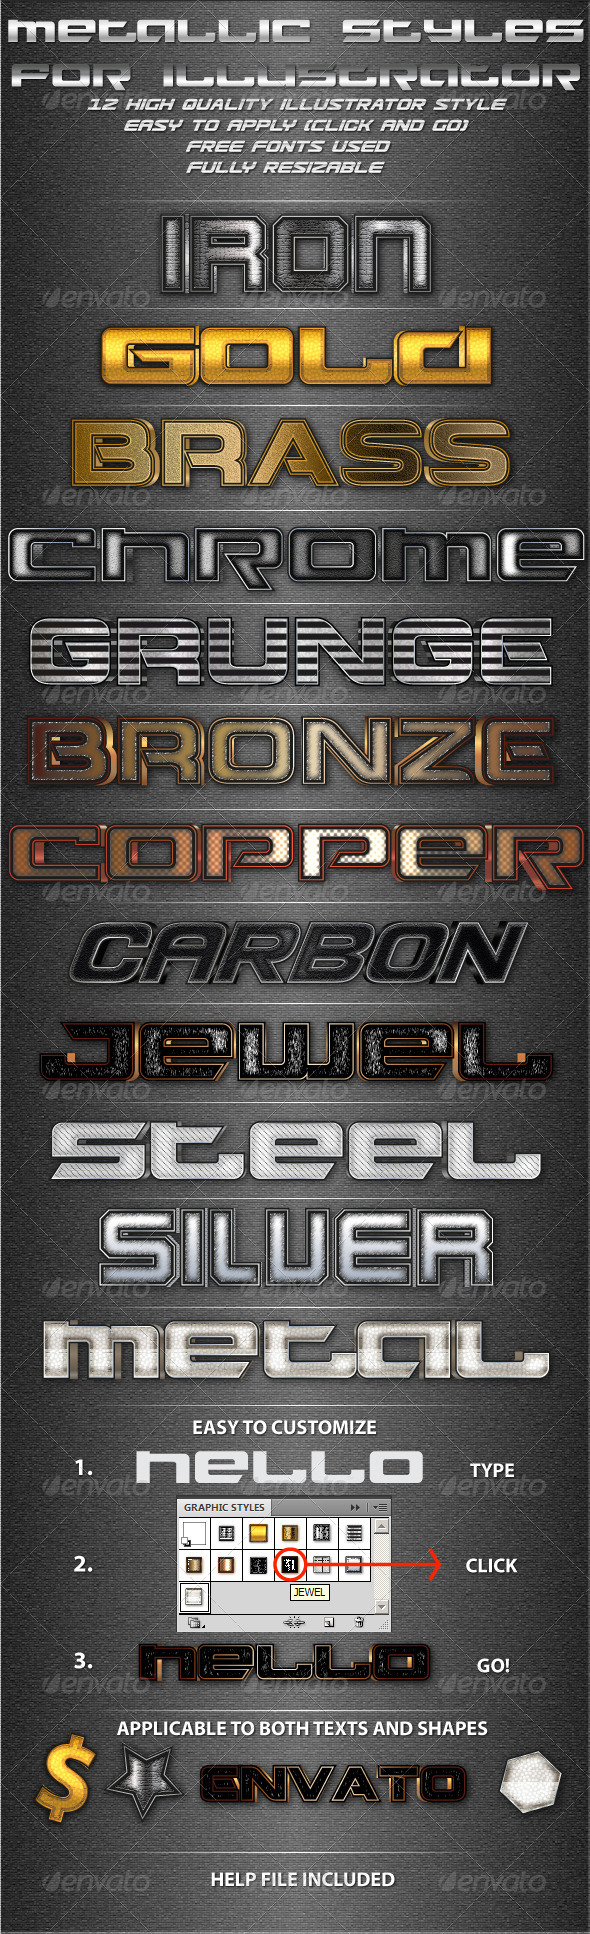 GraphicRiver Metallic Styles for Illustrator 4484097